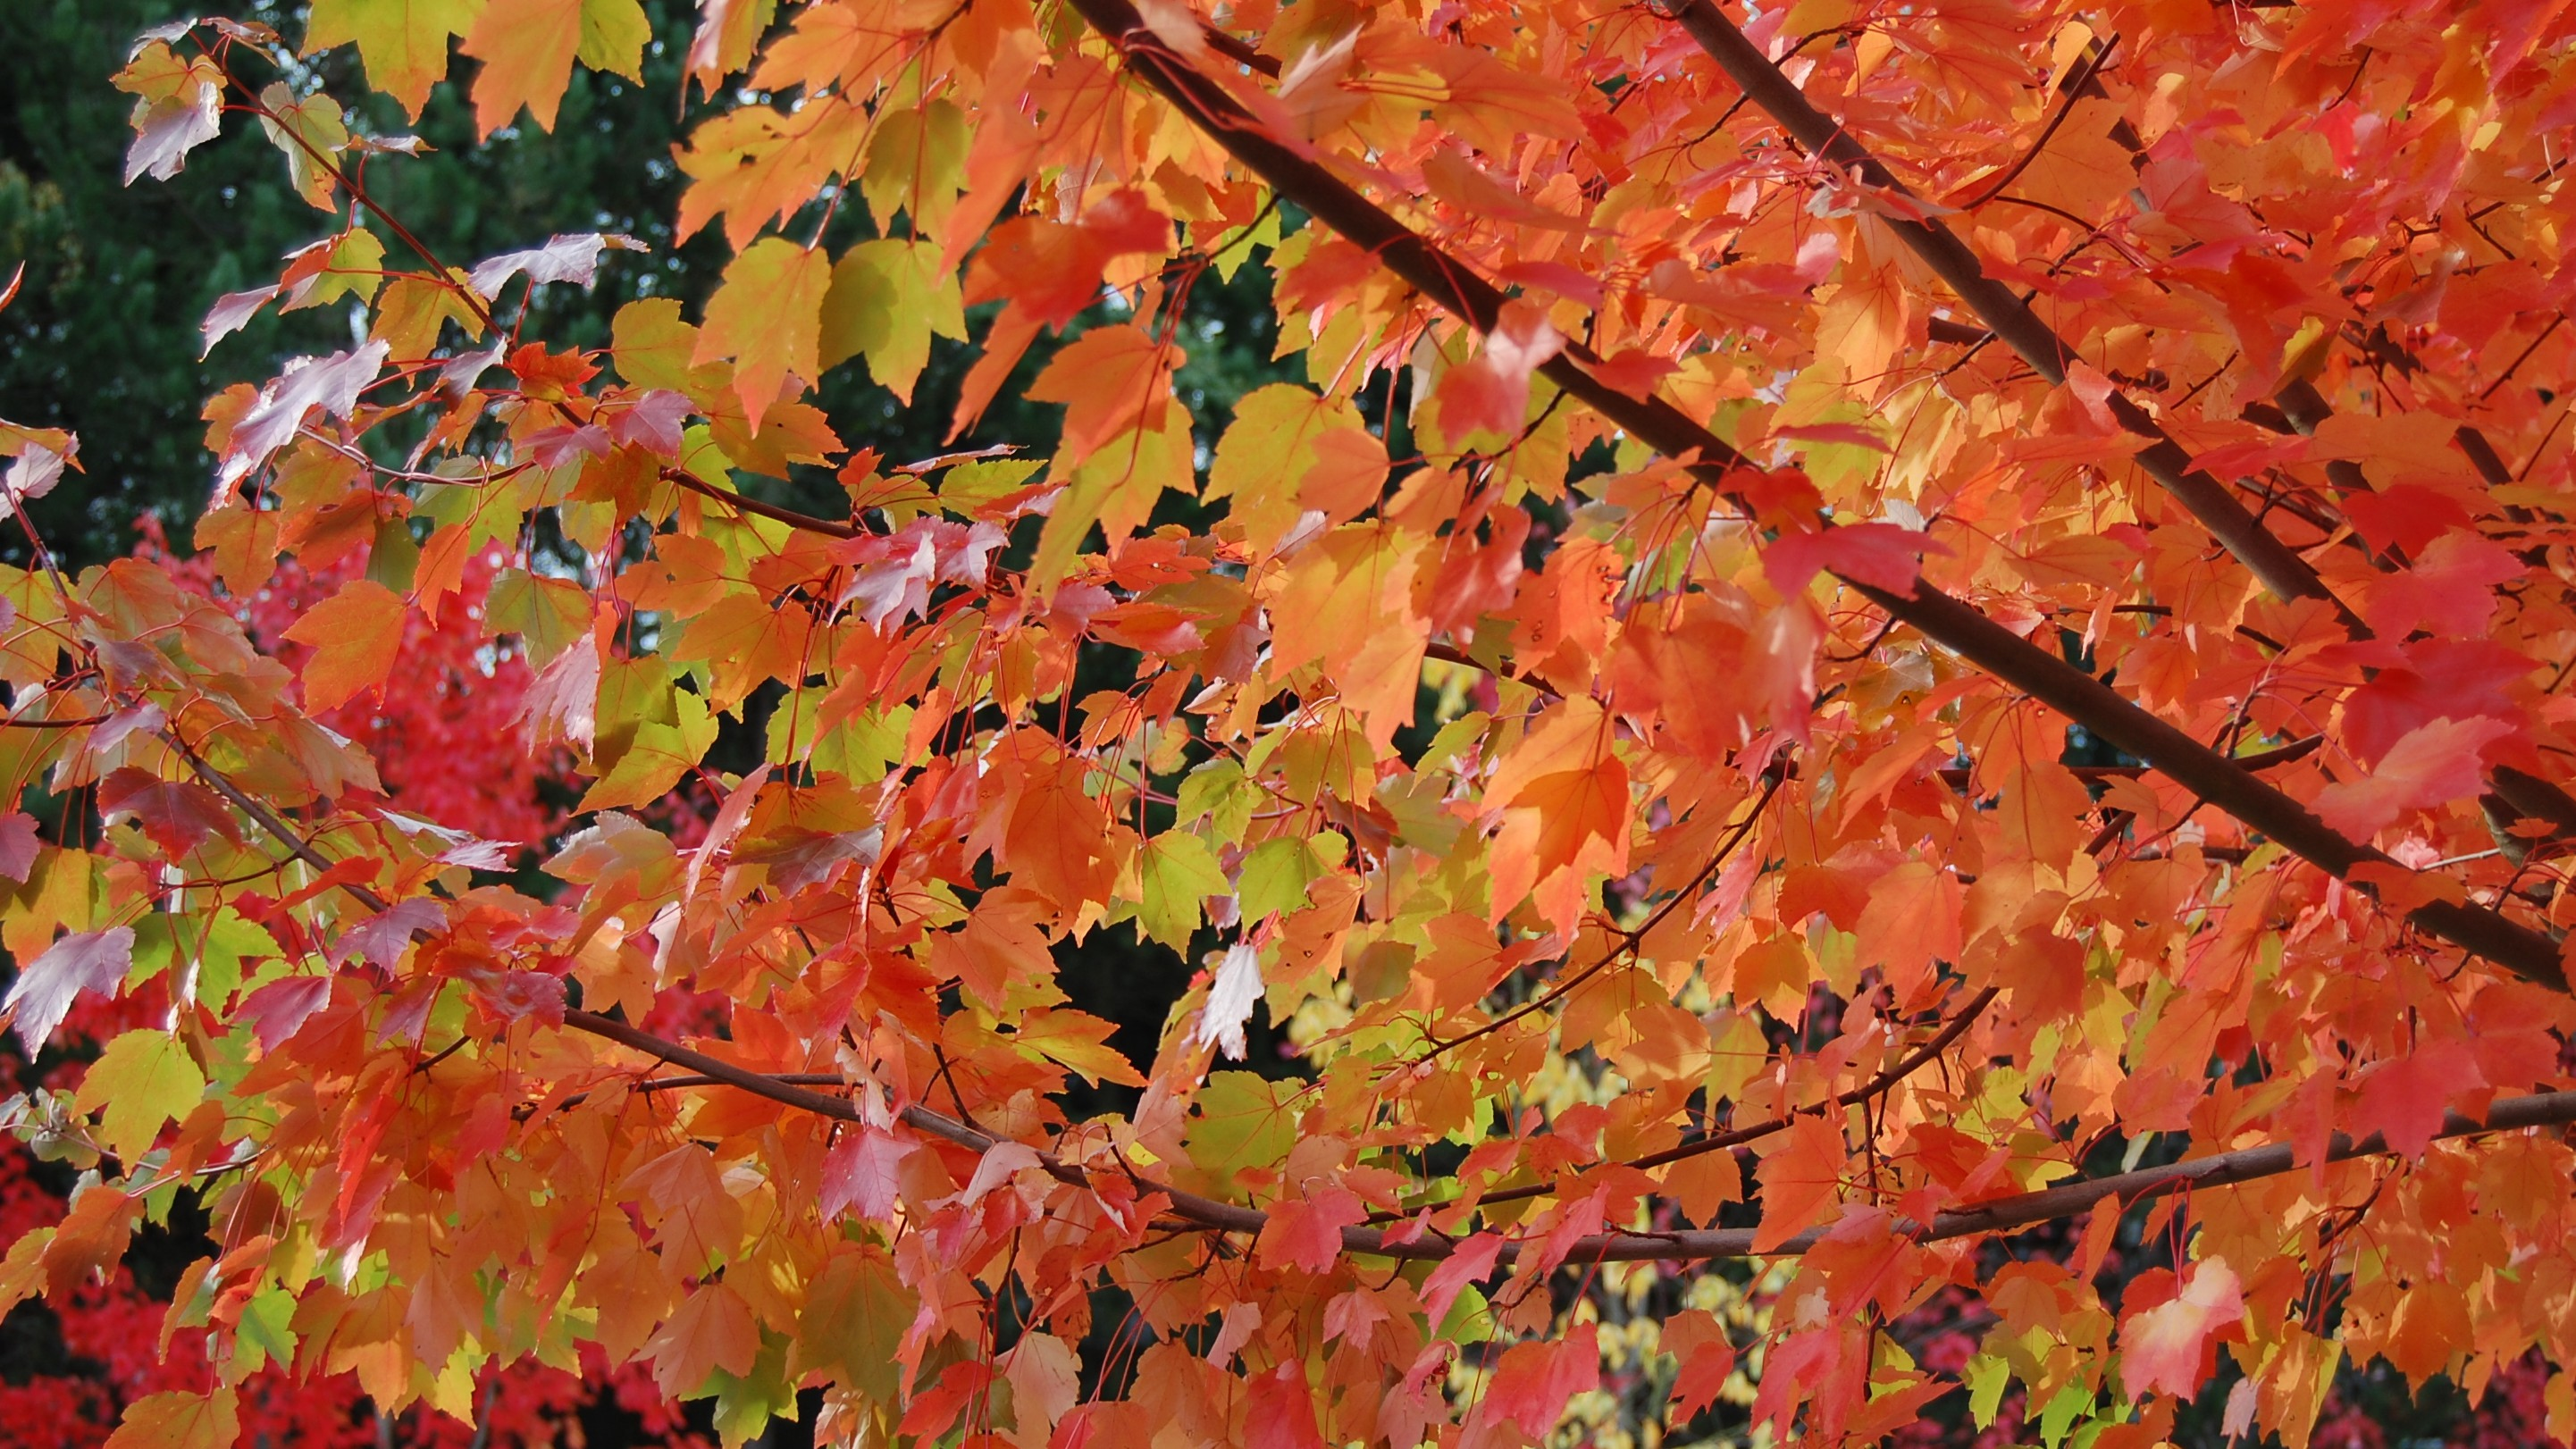 Maple leaves in bright colors of red, orange, green and yellow.